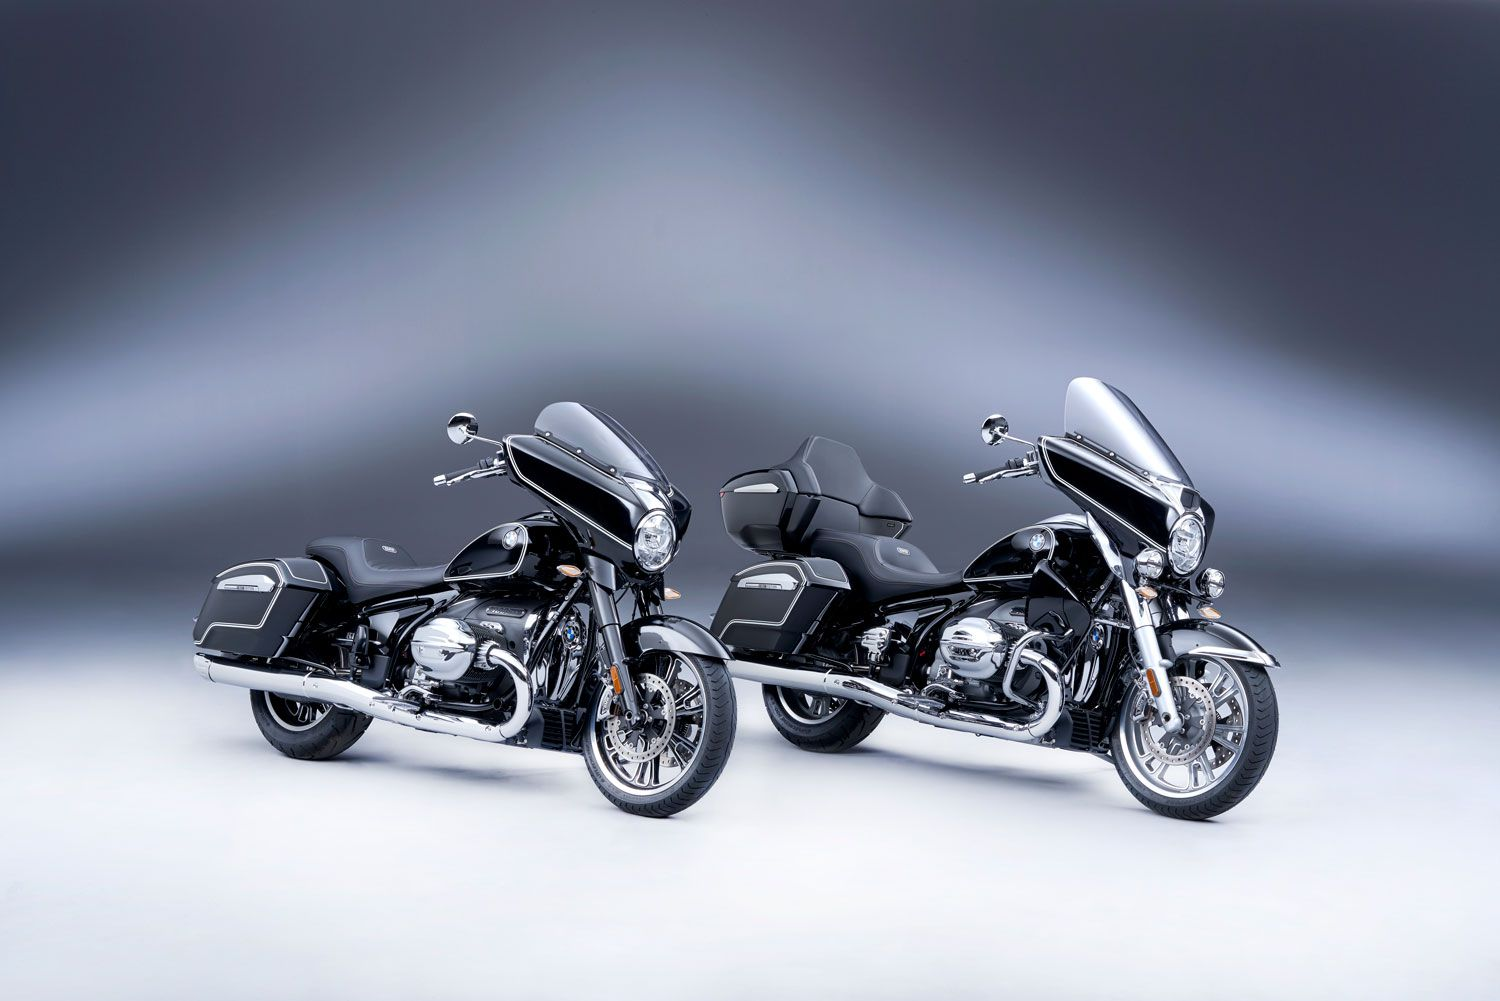 The 2022 BMW R 18 B and R 18 Transcontinental first editions.